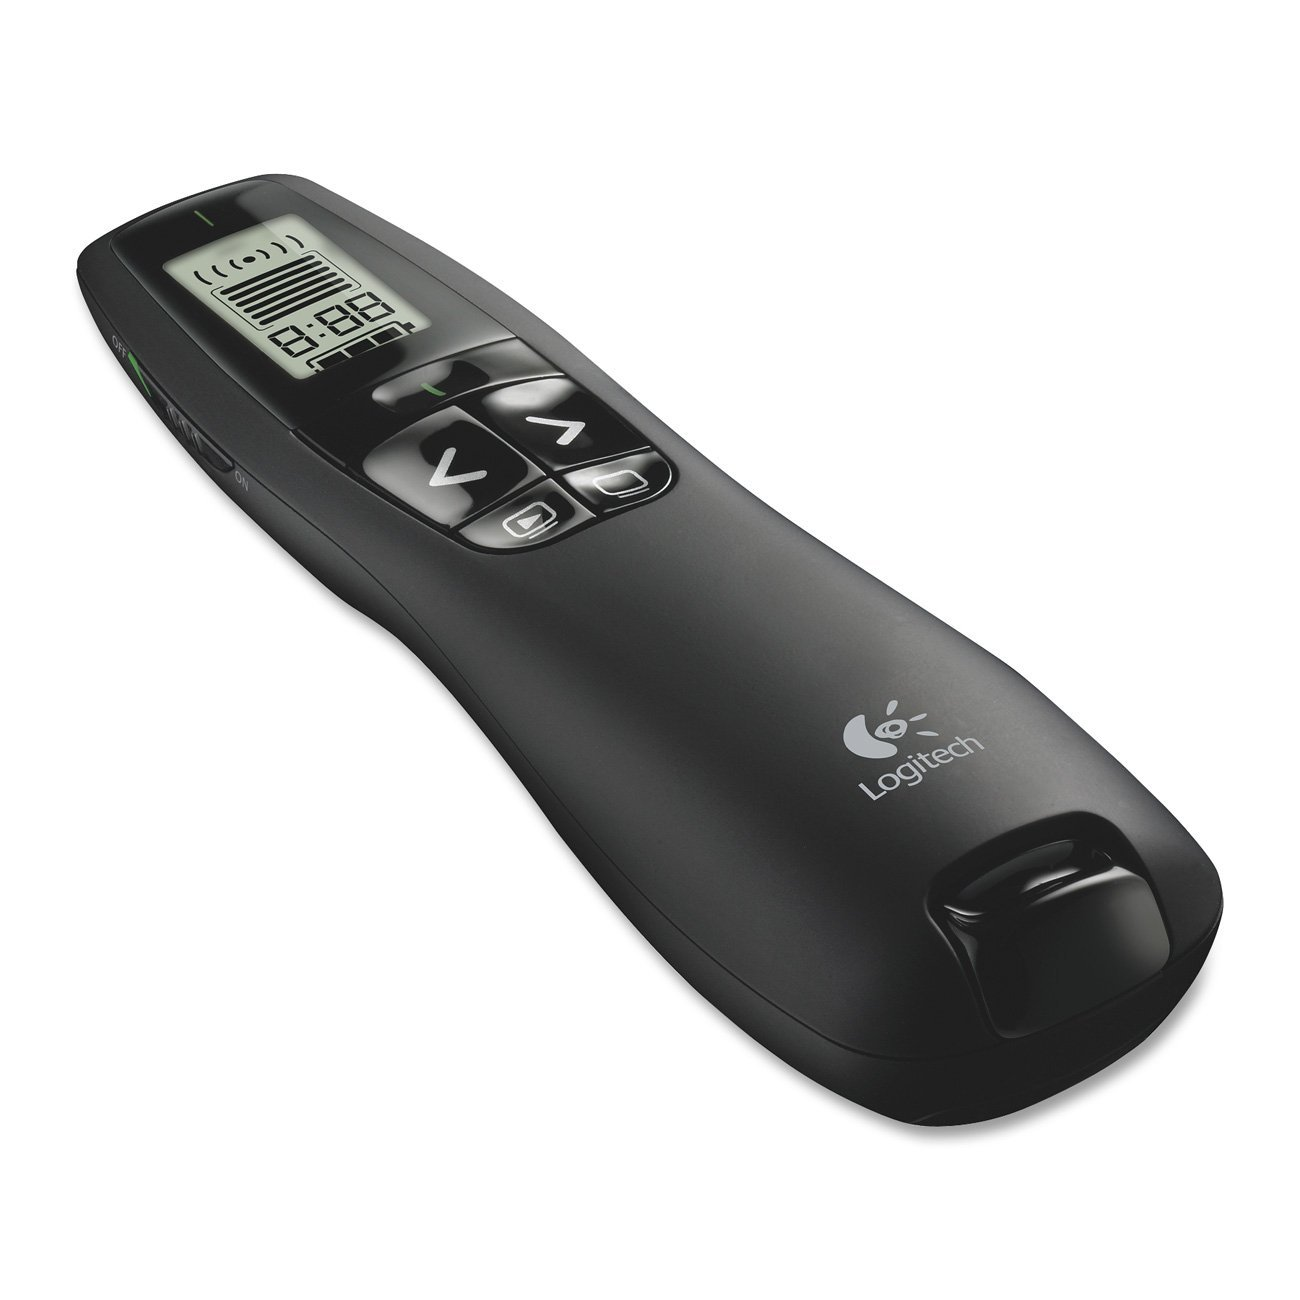 Logitech Professional Presenter R800, Presentation Wireless Presenter with Laser Pointer Green Non retail Pacakge